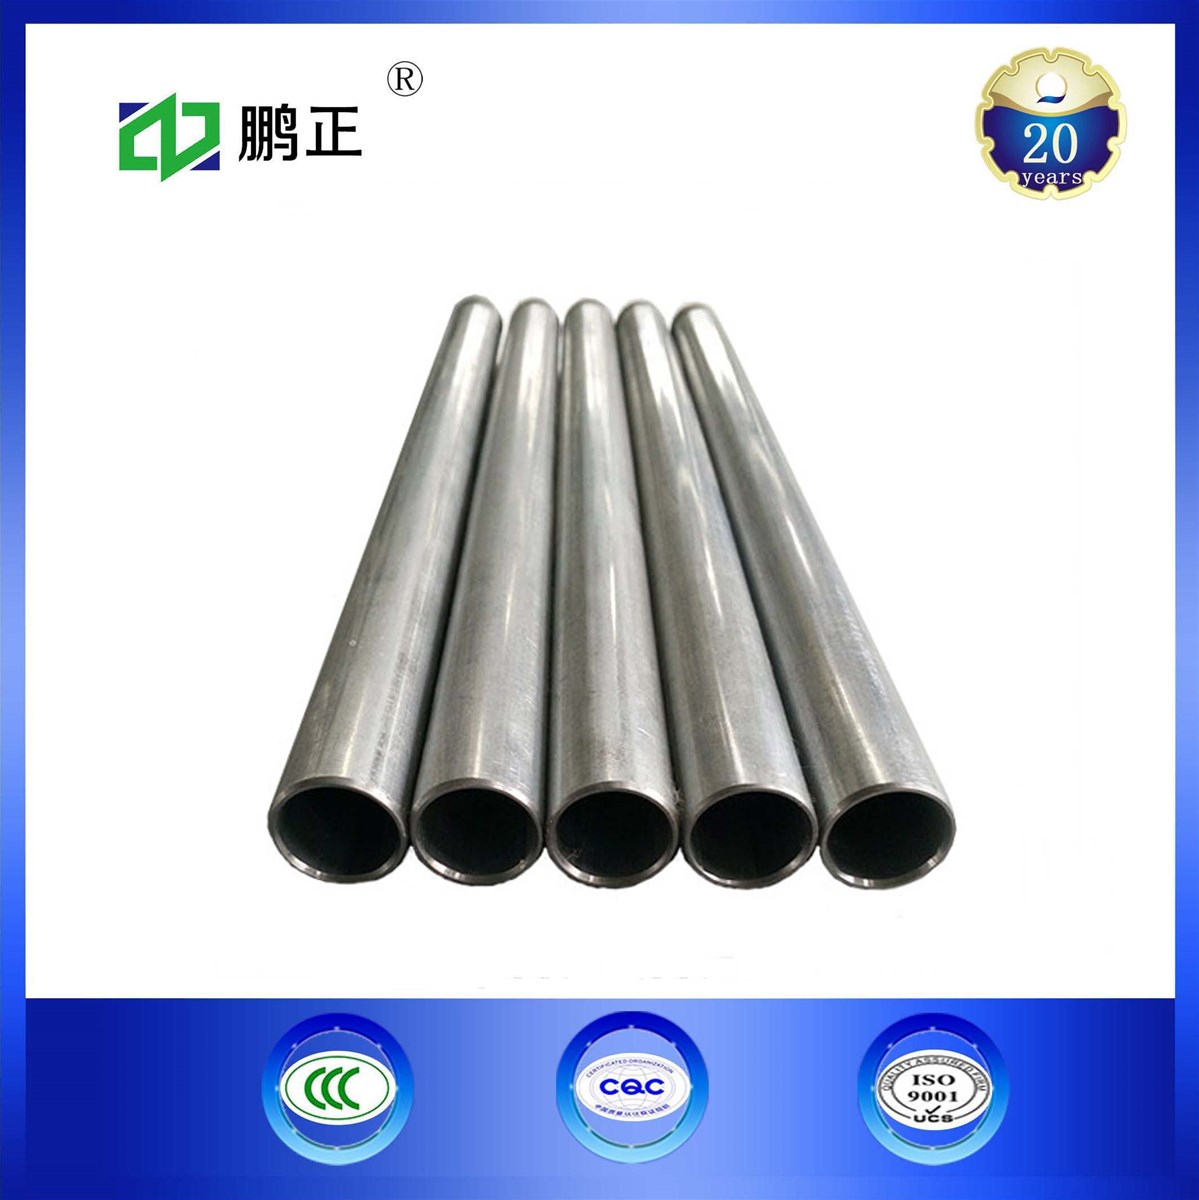 Superstrong Corrosion Resistance Double Galvanized Electric Steel Emt Electrical Metal Tubing Conduit Pipe